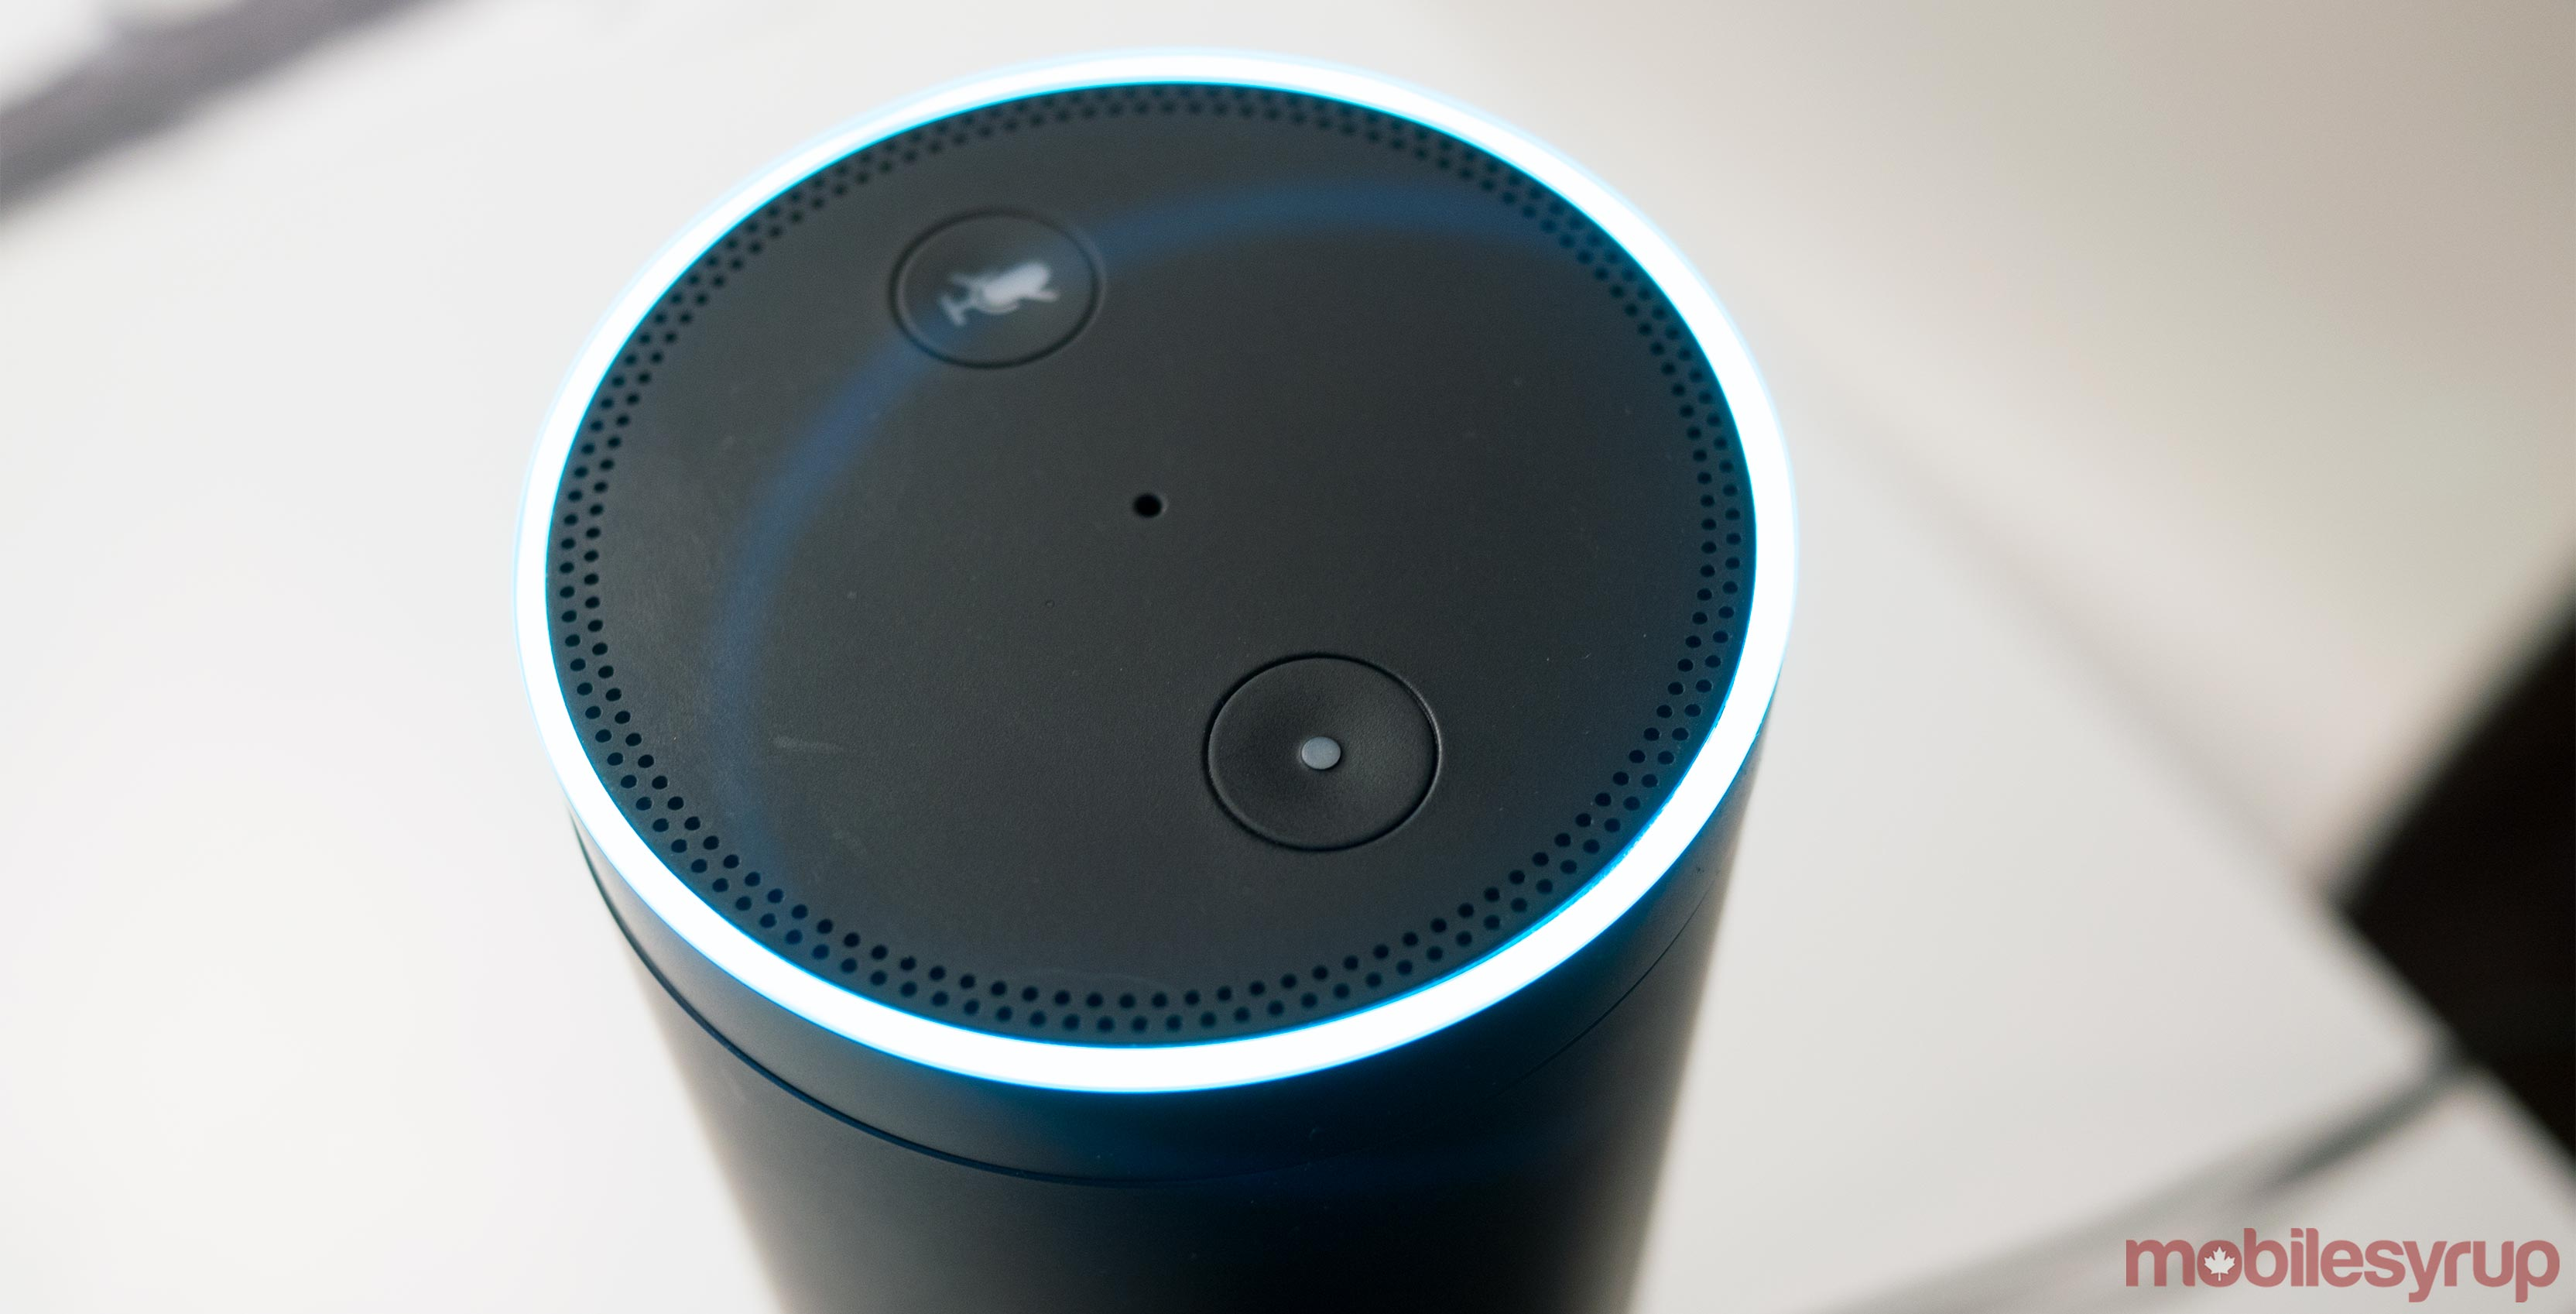 The mystery of Alexa's eerie laugh has been solved